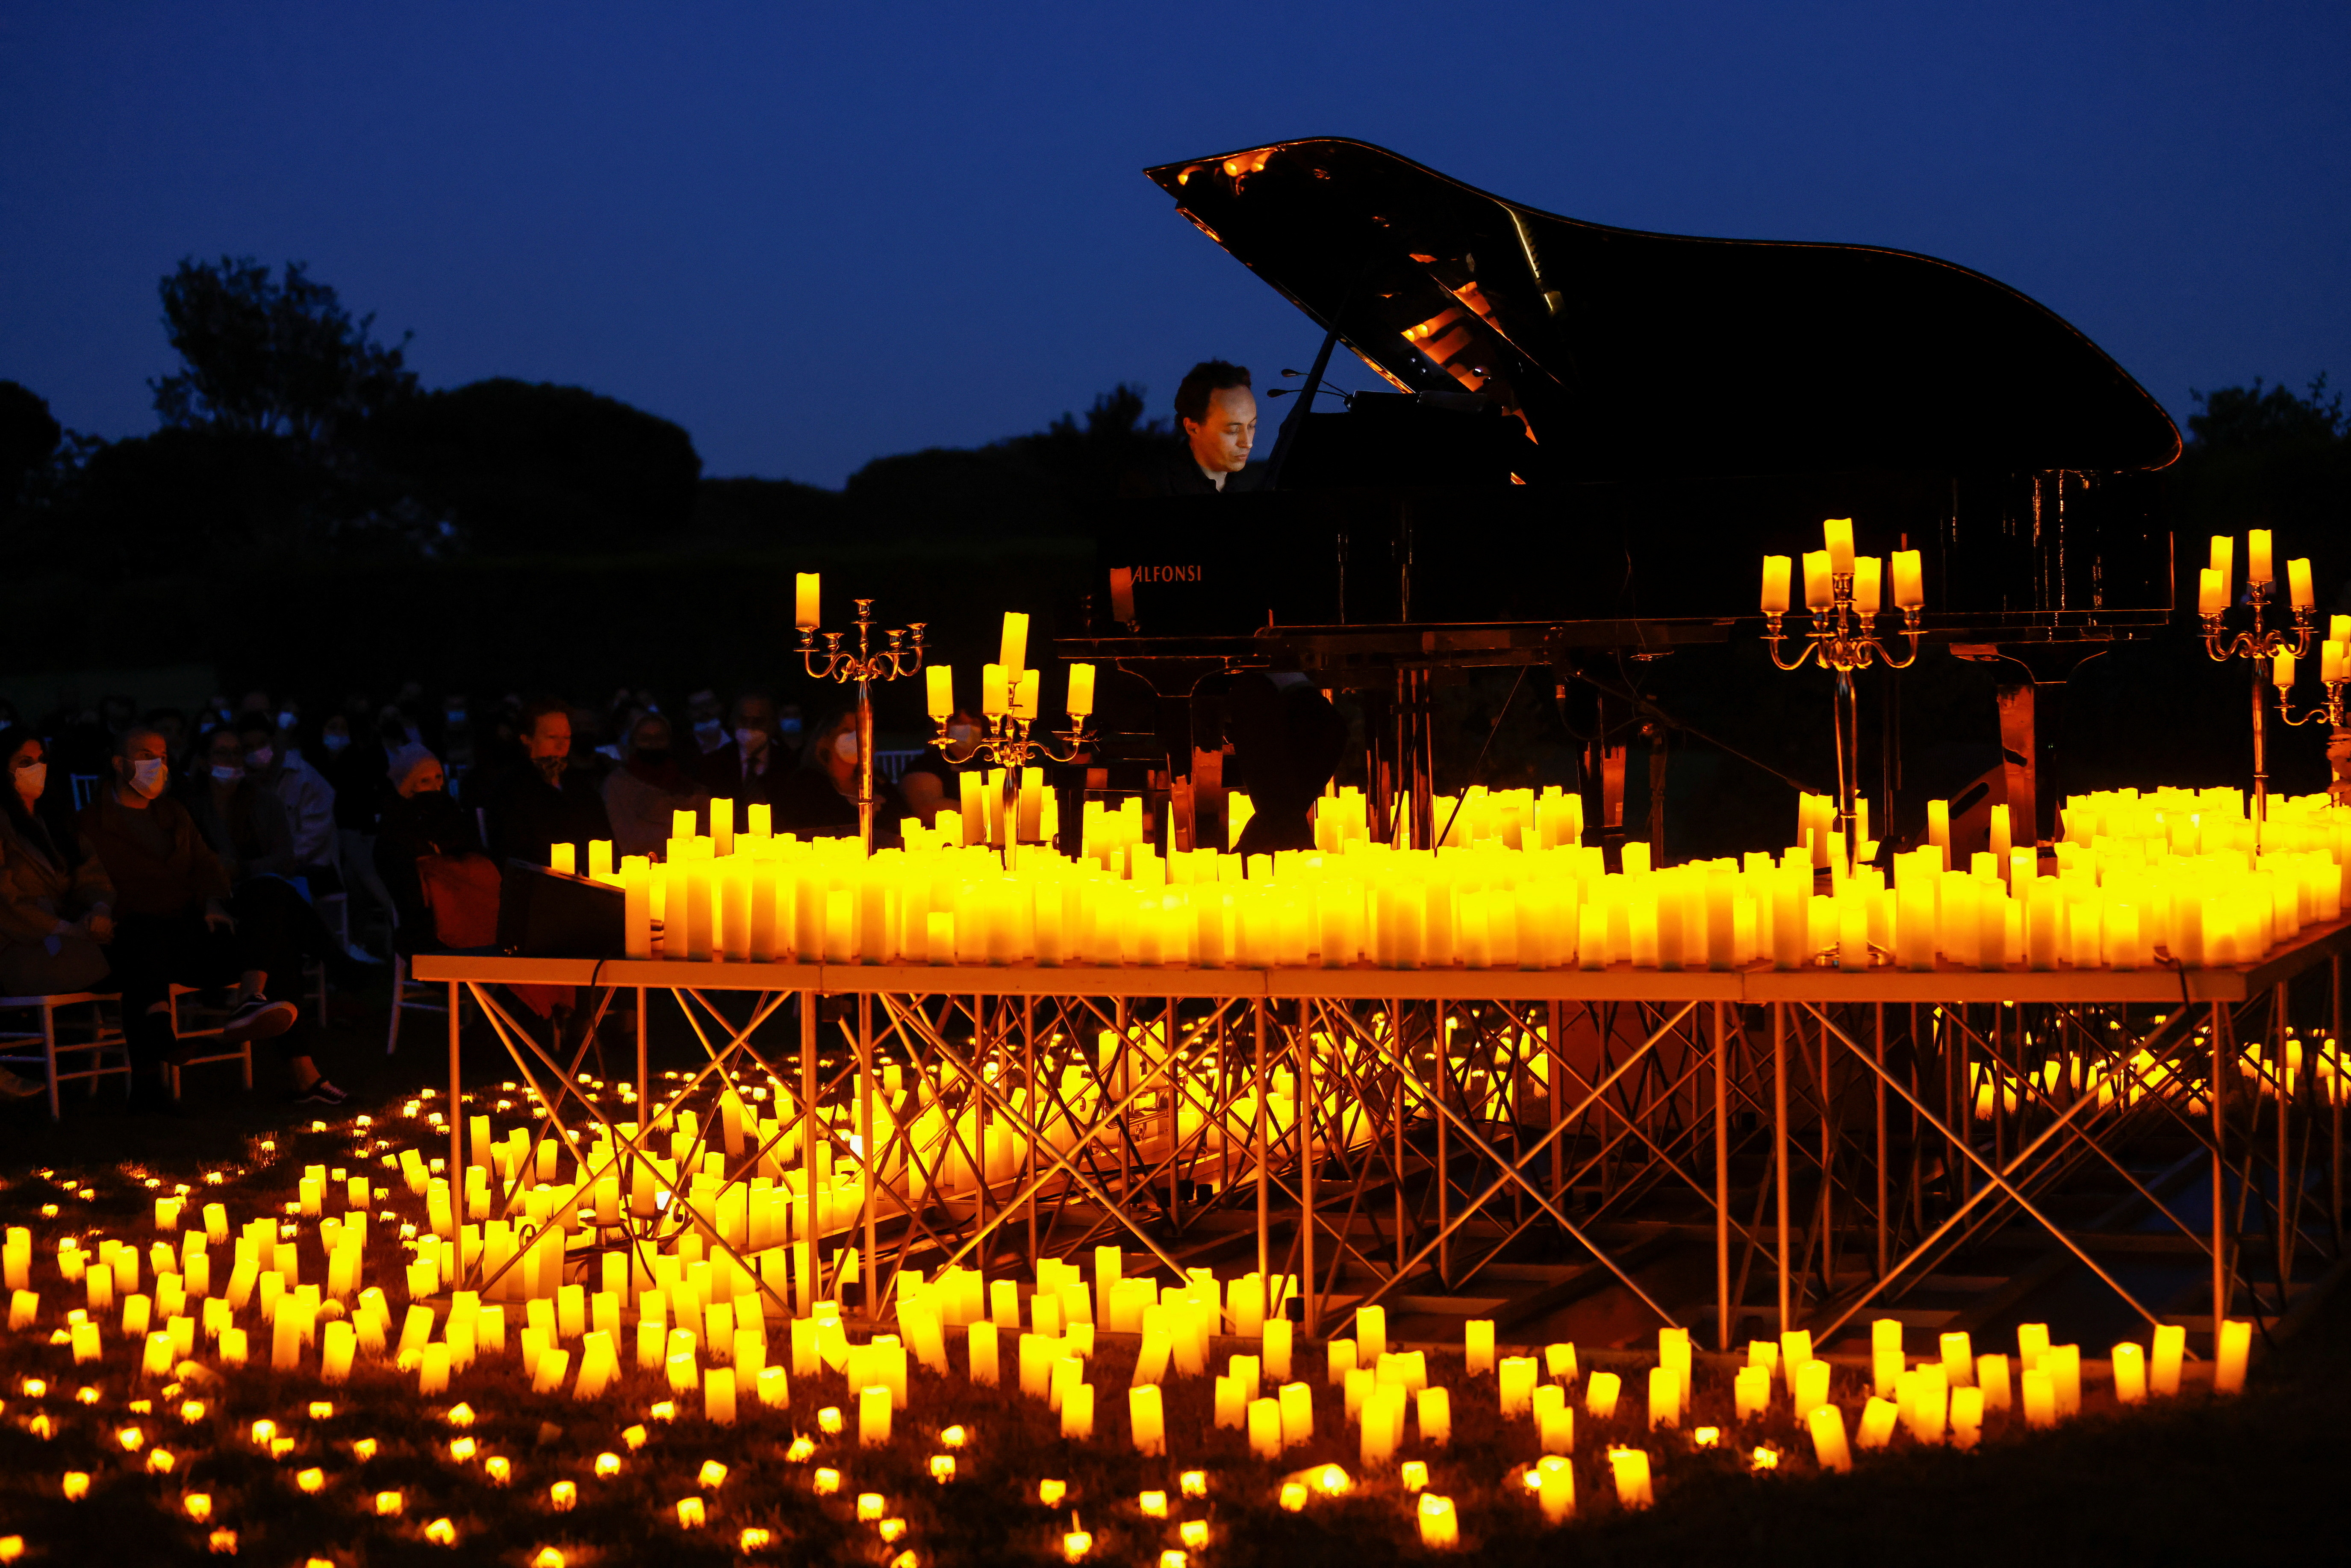 Pianist Giuseppe Califano plays during a candlelight concert inside the archaeological park of Appia Antica, during the coronavirus disease (COVID-19) pandemic, in Rome, Italy, May 10, 2021.